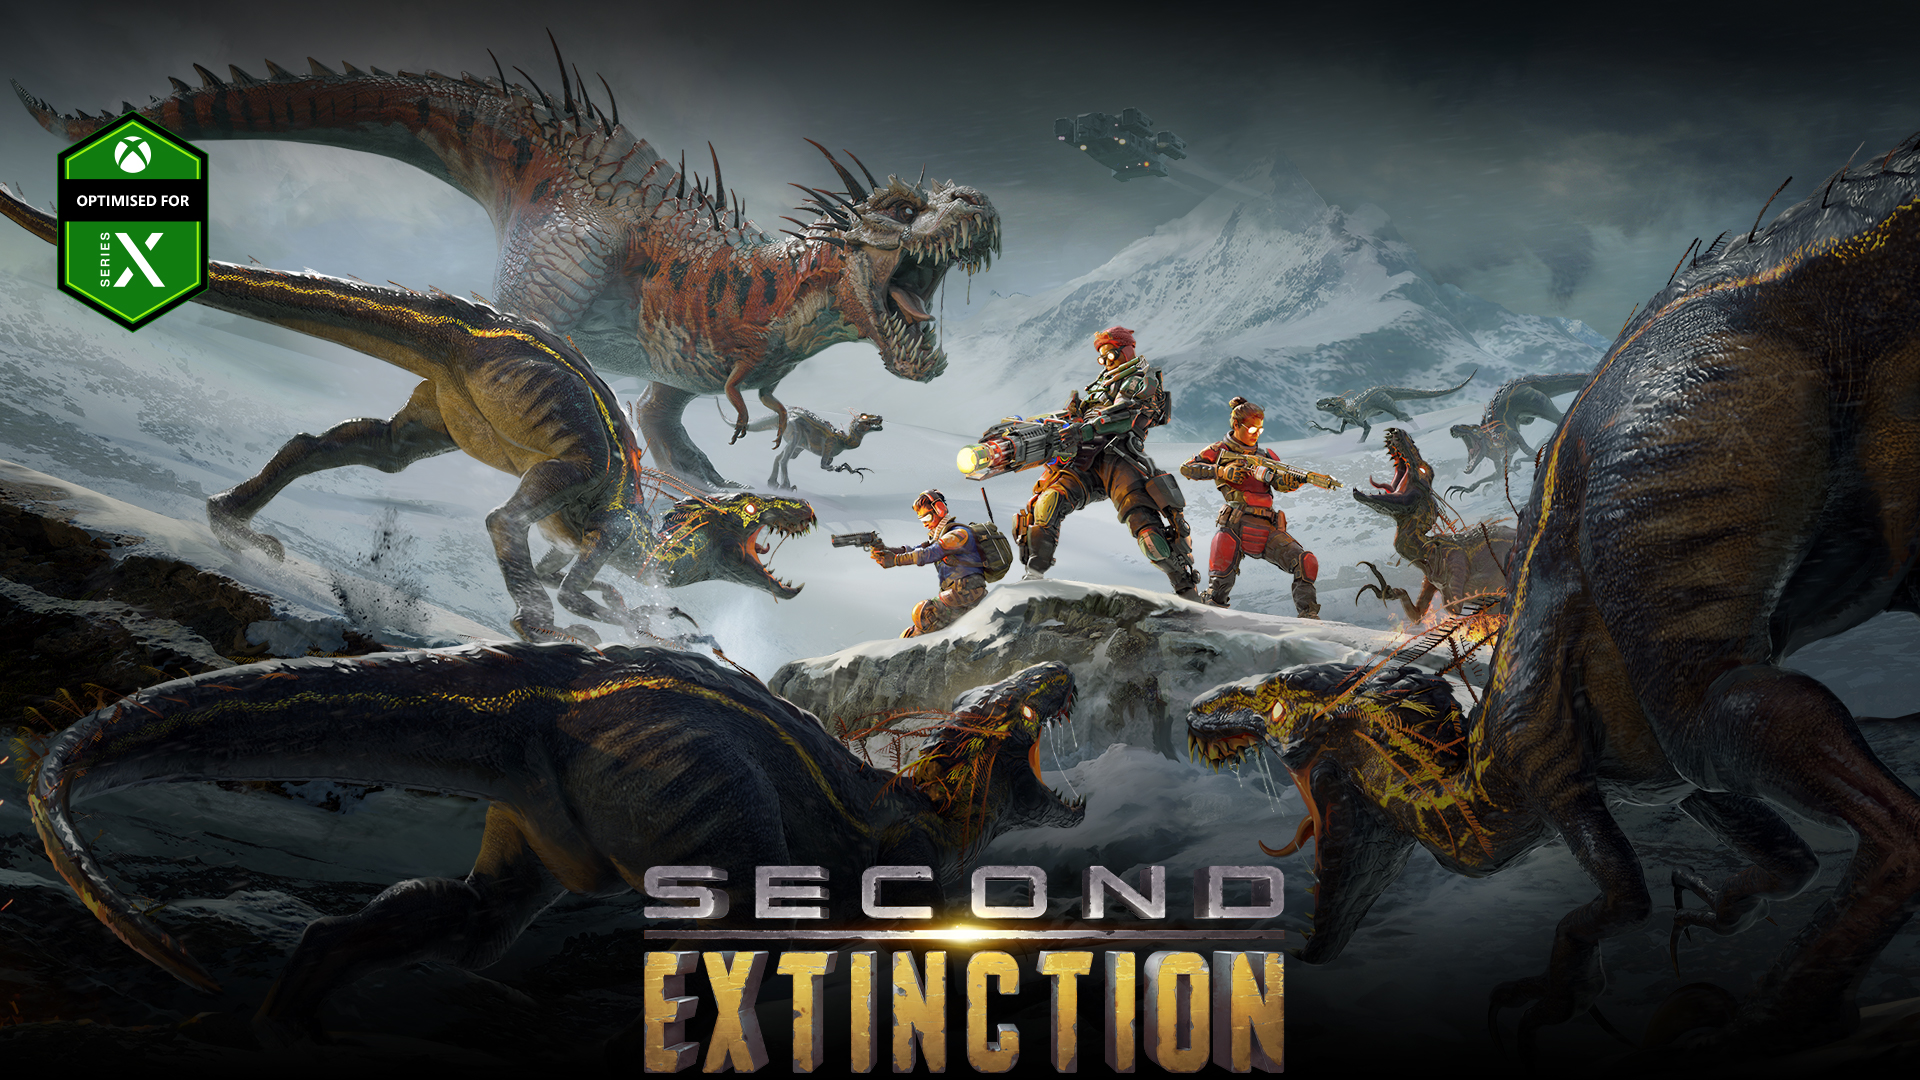 Second Extinction, Optimised for Series X, a group of characters clash with a group of dinosaurs.